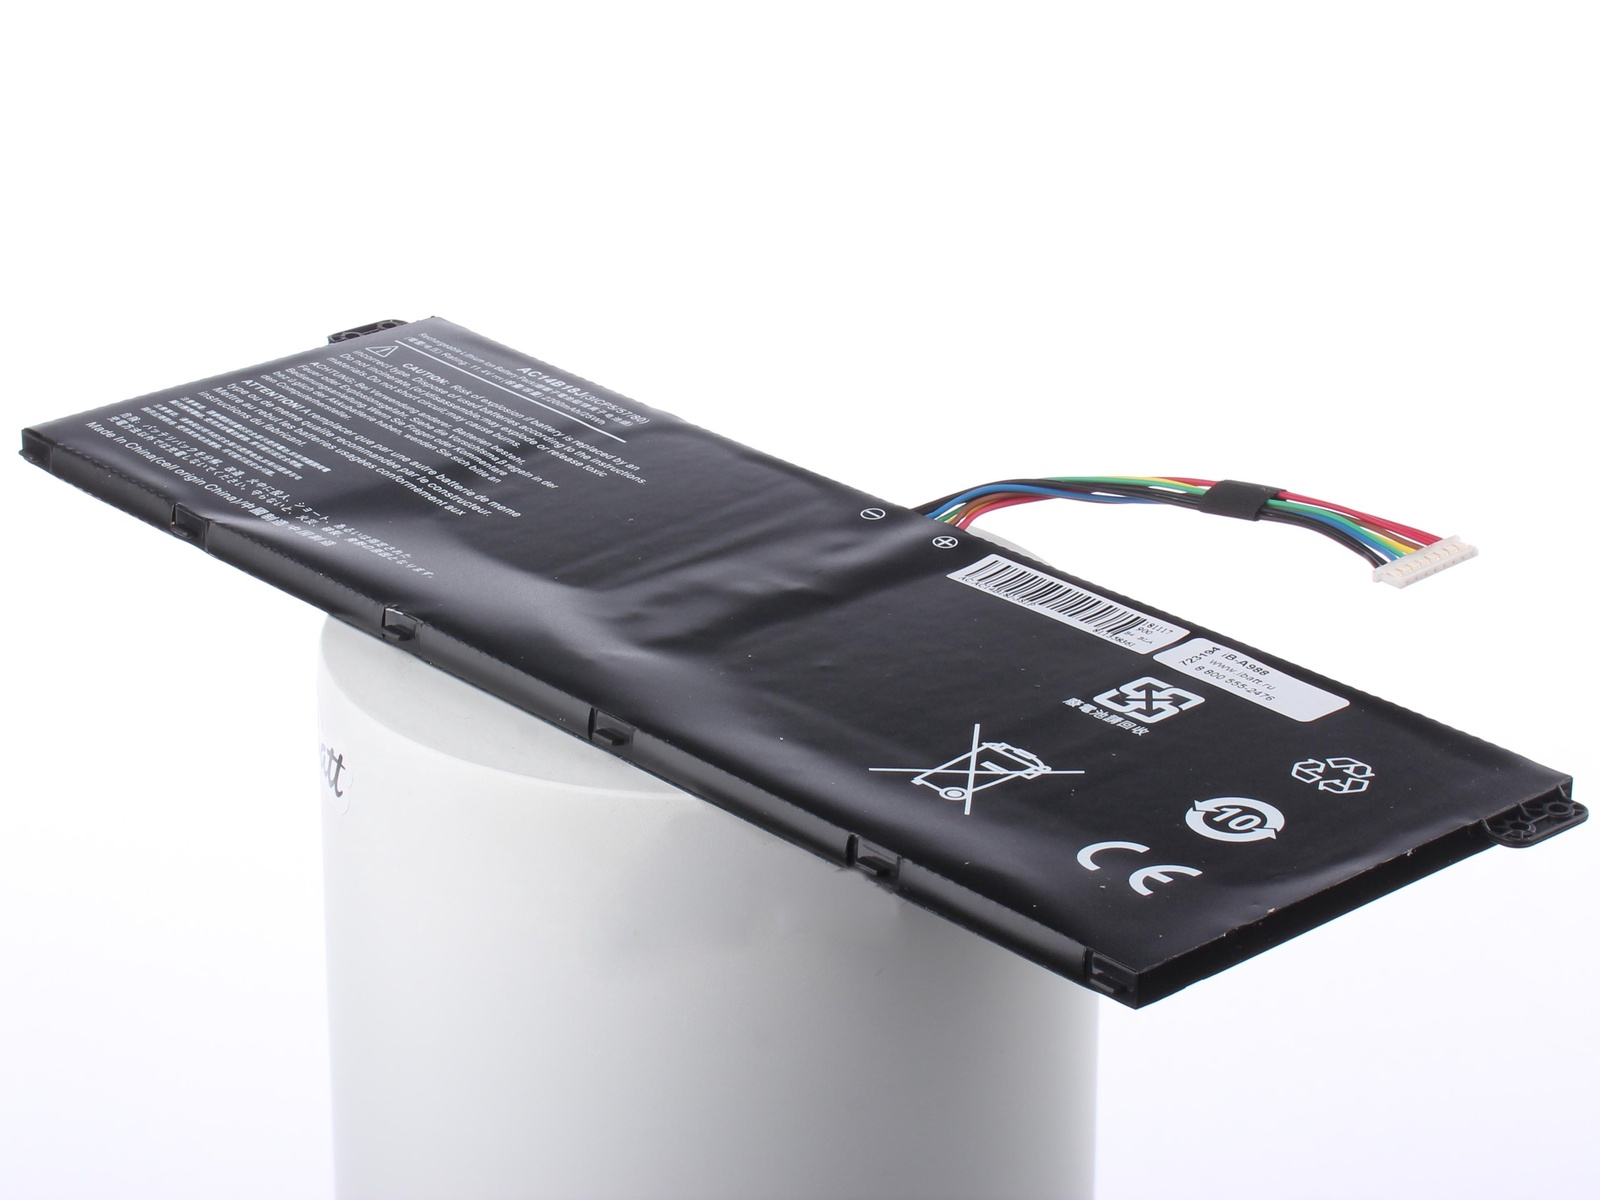 Аккумуляторная батарея iBatt iB-T5-A988 3220mAh для ноутбуков Acer Aspire ES1-521-81VU, ASPIRE ES1-531-P1X8, ASPIRE ES1-731-C2WU, Aspire ES1-731-P8W2, Aspire ES1-331-P4E9, Aspire ES1-331-P8Z7, Aspire ES1-521-82PD, ASPIRE ES1-531-C6H4, Aspire ES1-731-P6ZR, for acer aspire es1 531 n15w4 screen matrix for laptop 15 6 edp 30 pin led display